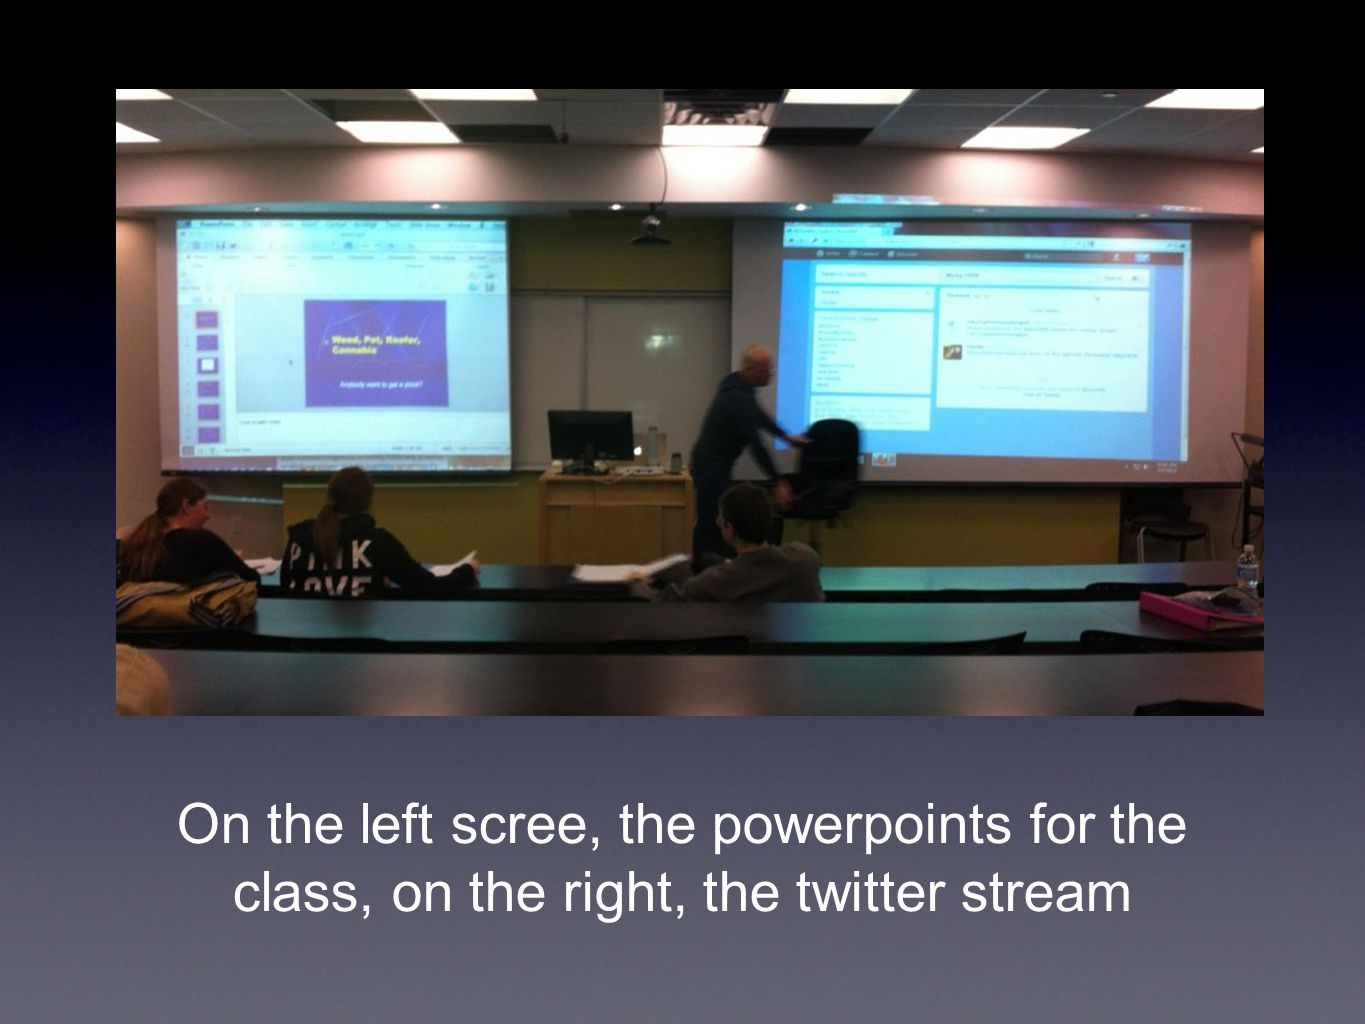 On the left scree, the powerpoints for the class, on the right, the twitter stream